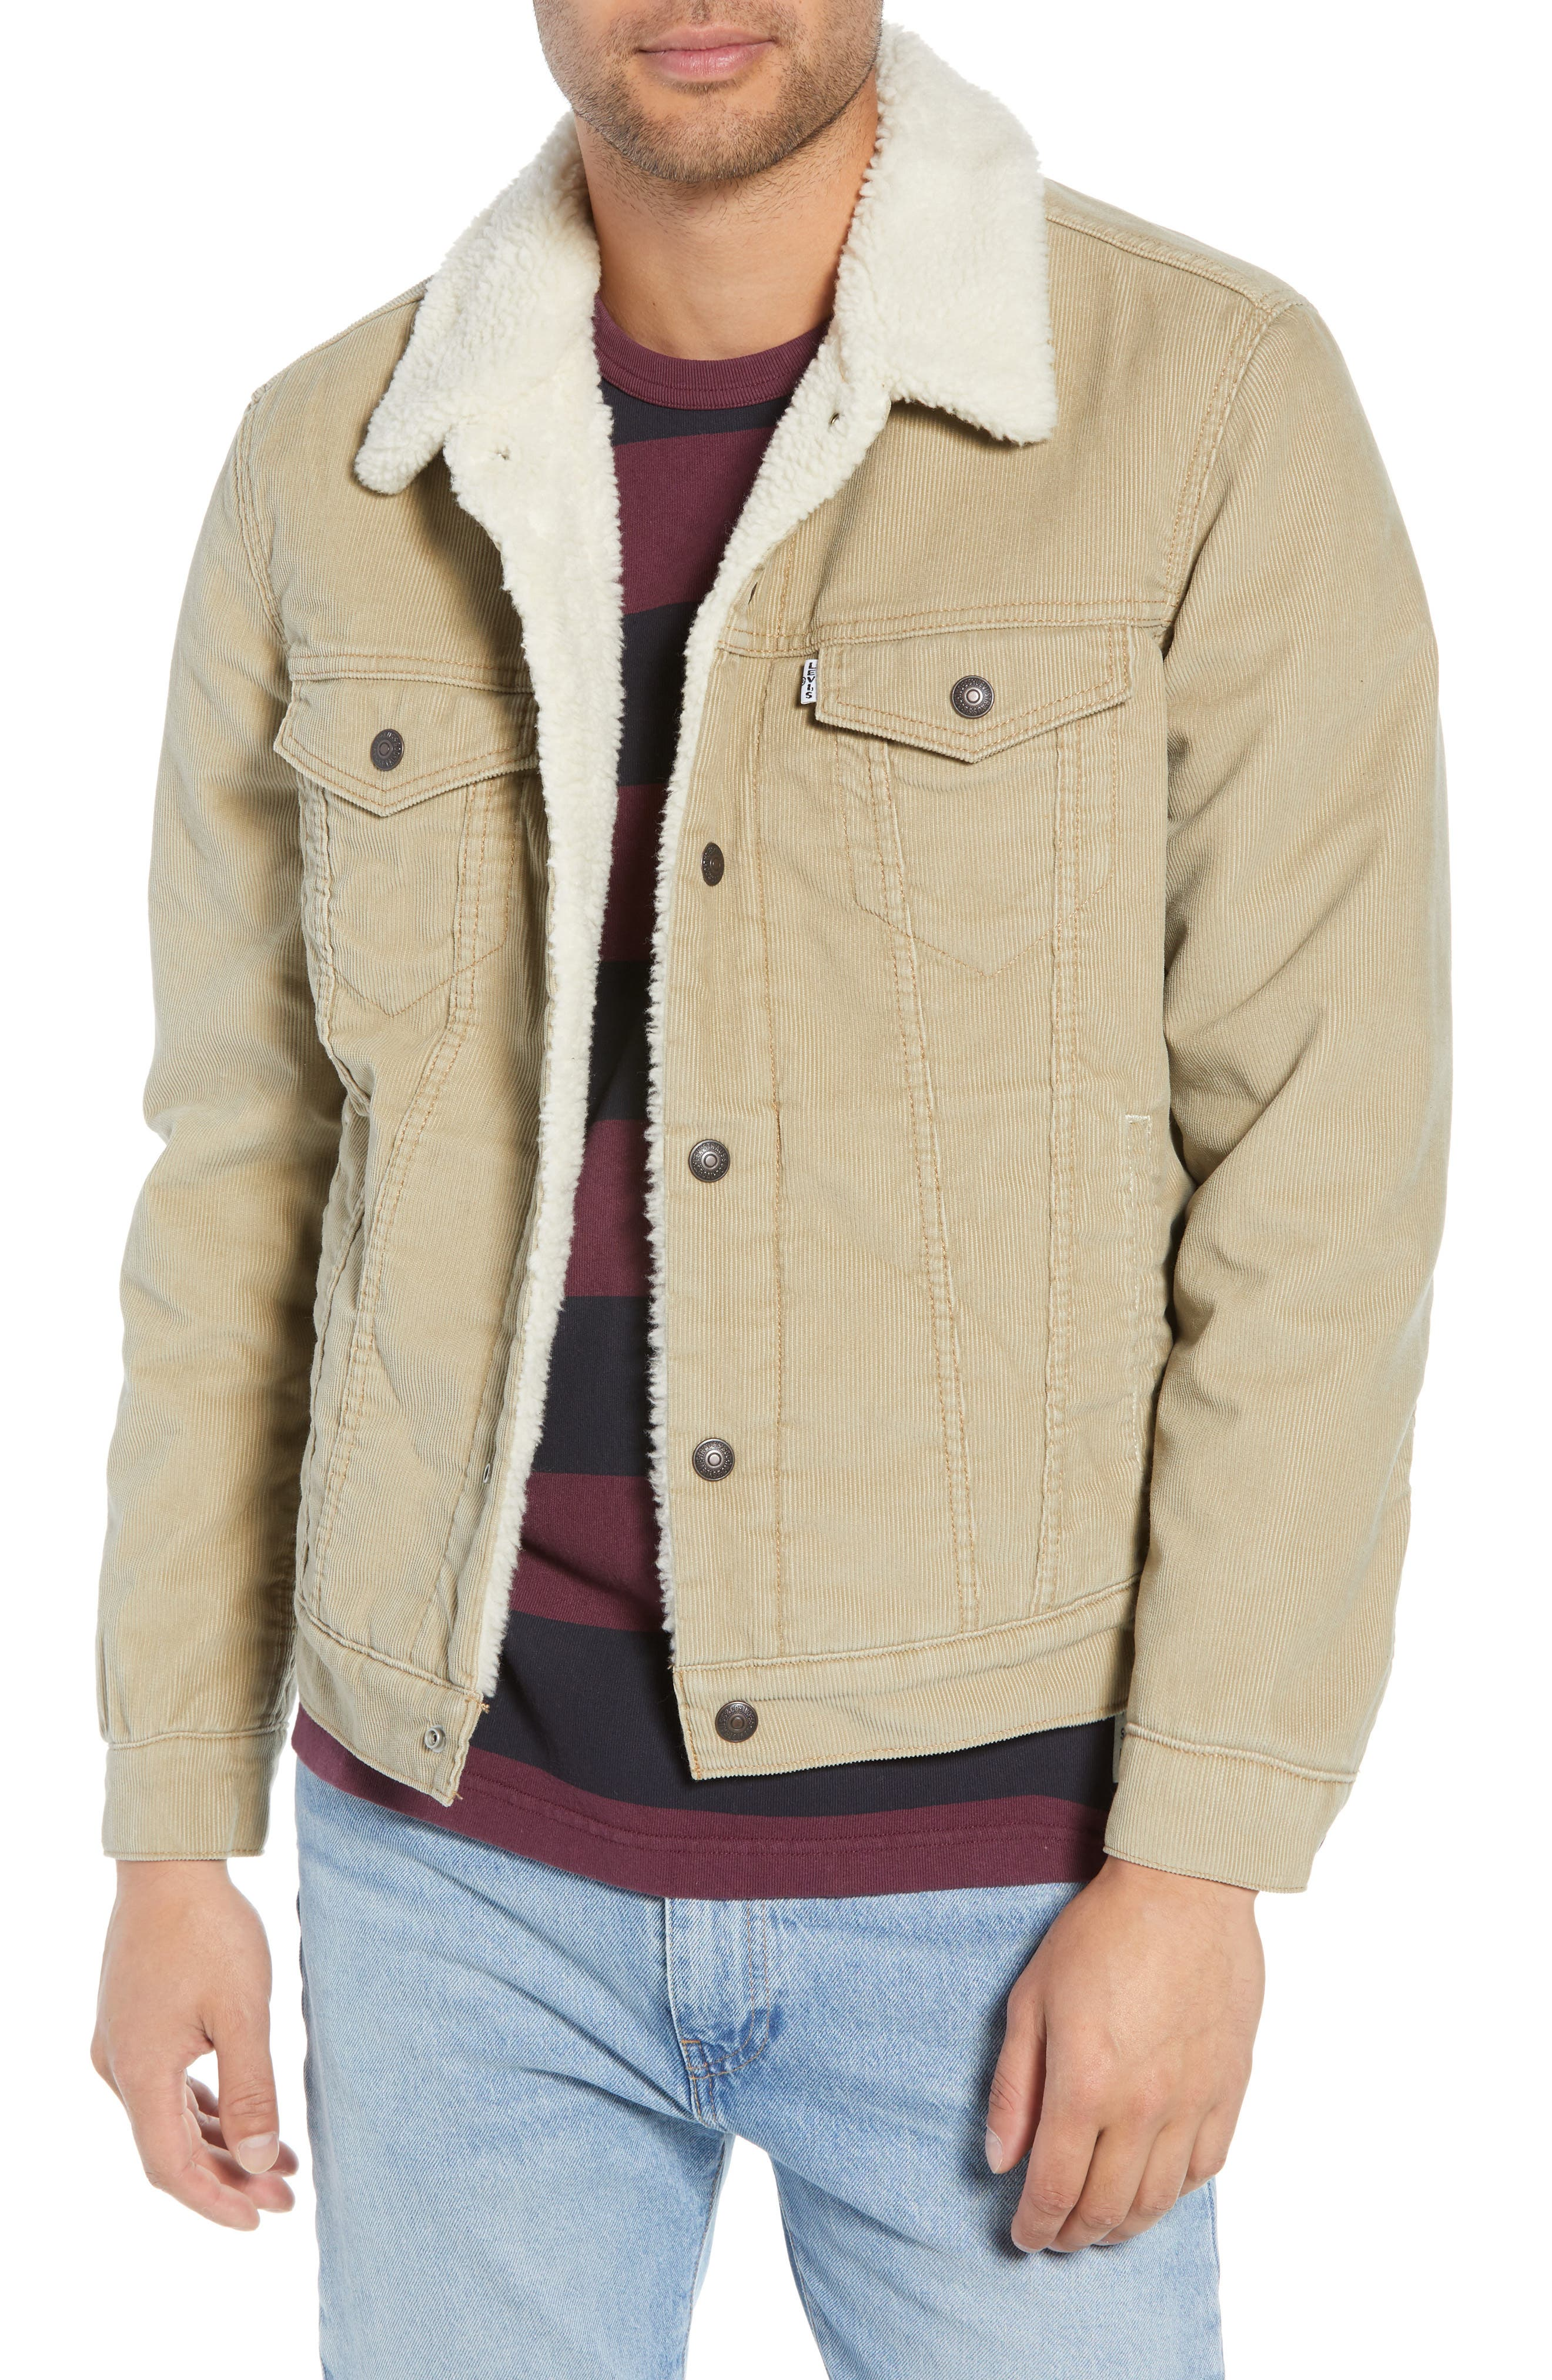 Type 3 Fleece Lined Trucker Jacket,                             Main thumbnail 1, color,                             TRUE CHINO CORD BETTER